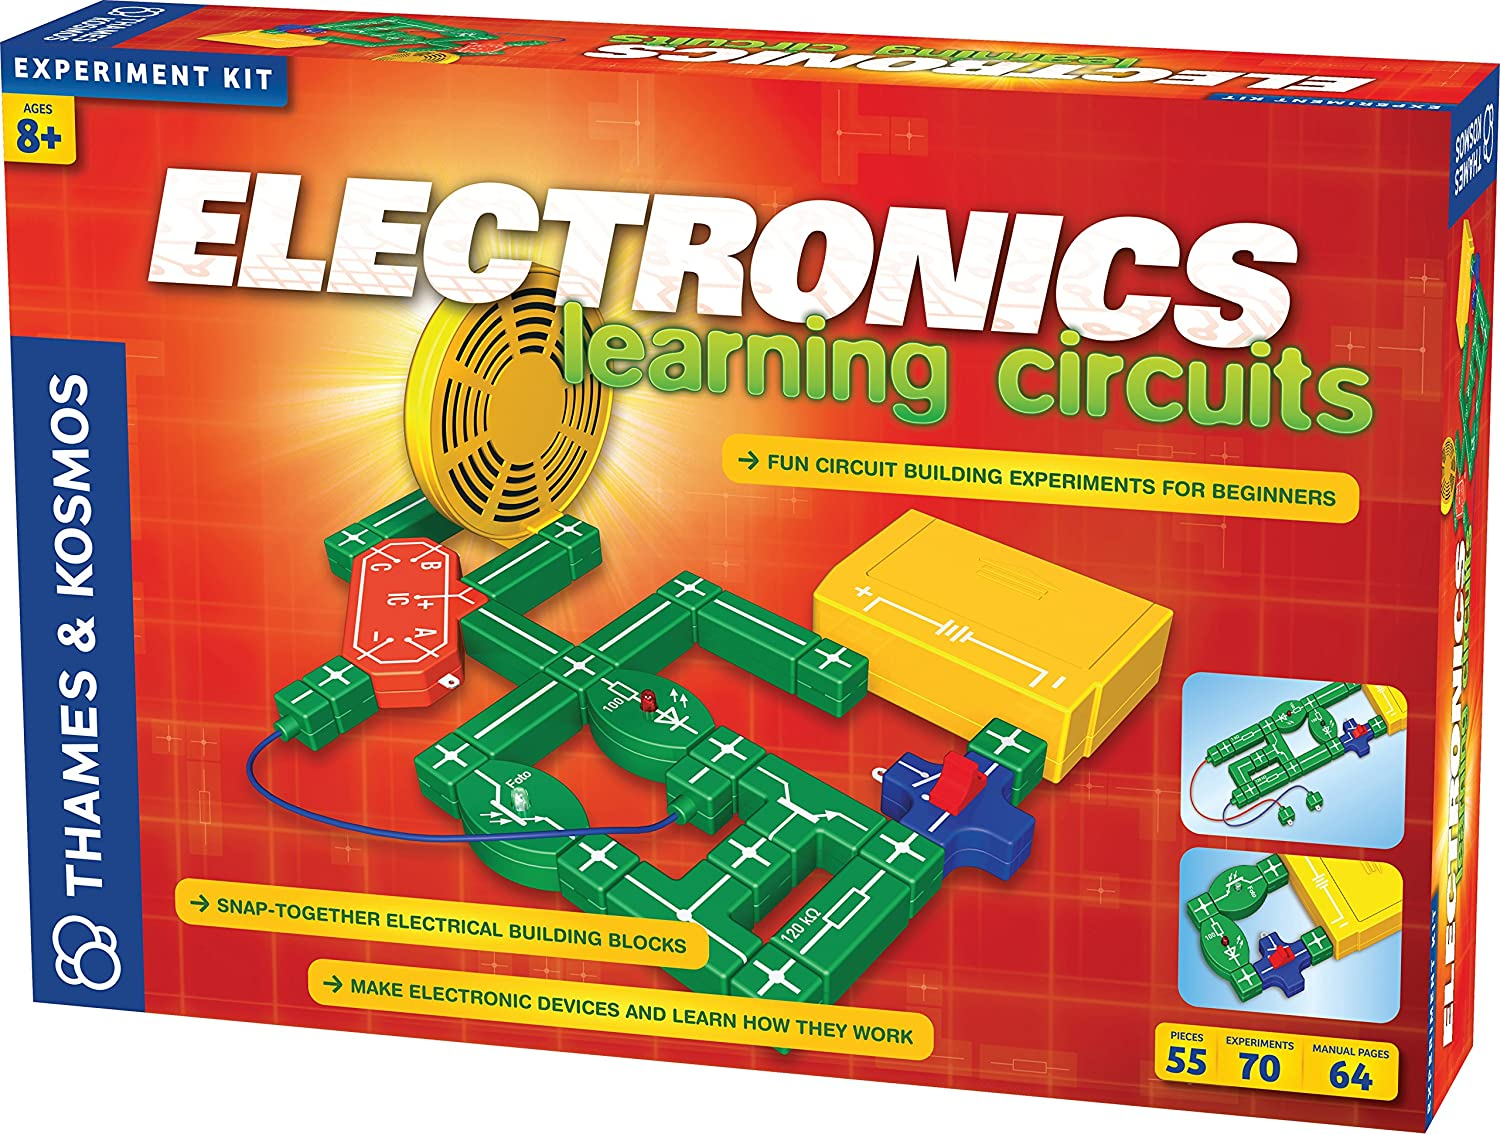 Electroics Learning Circuits